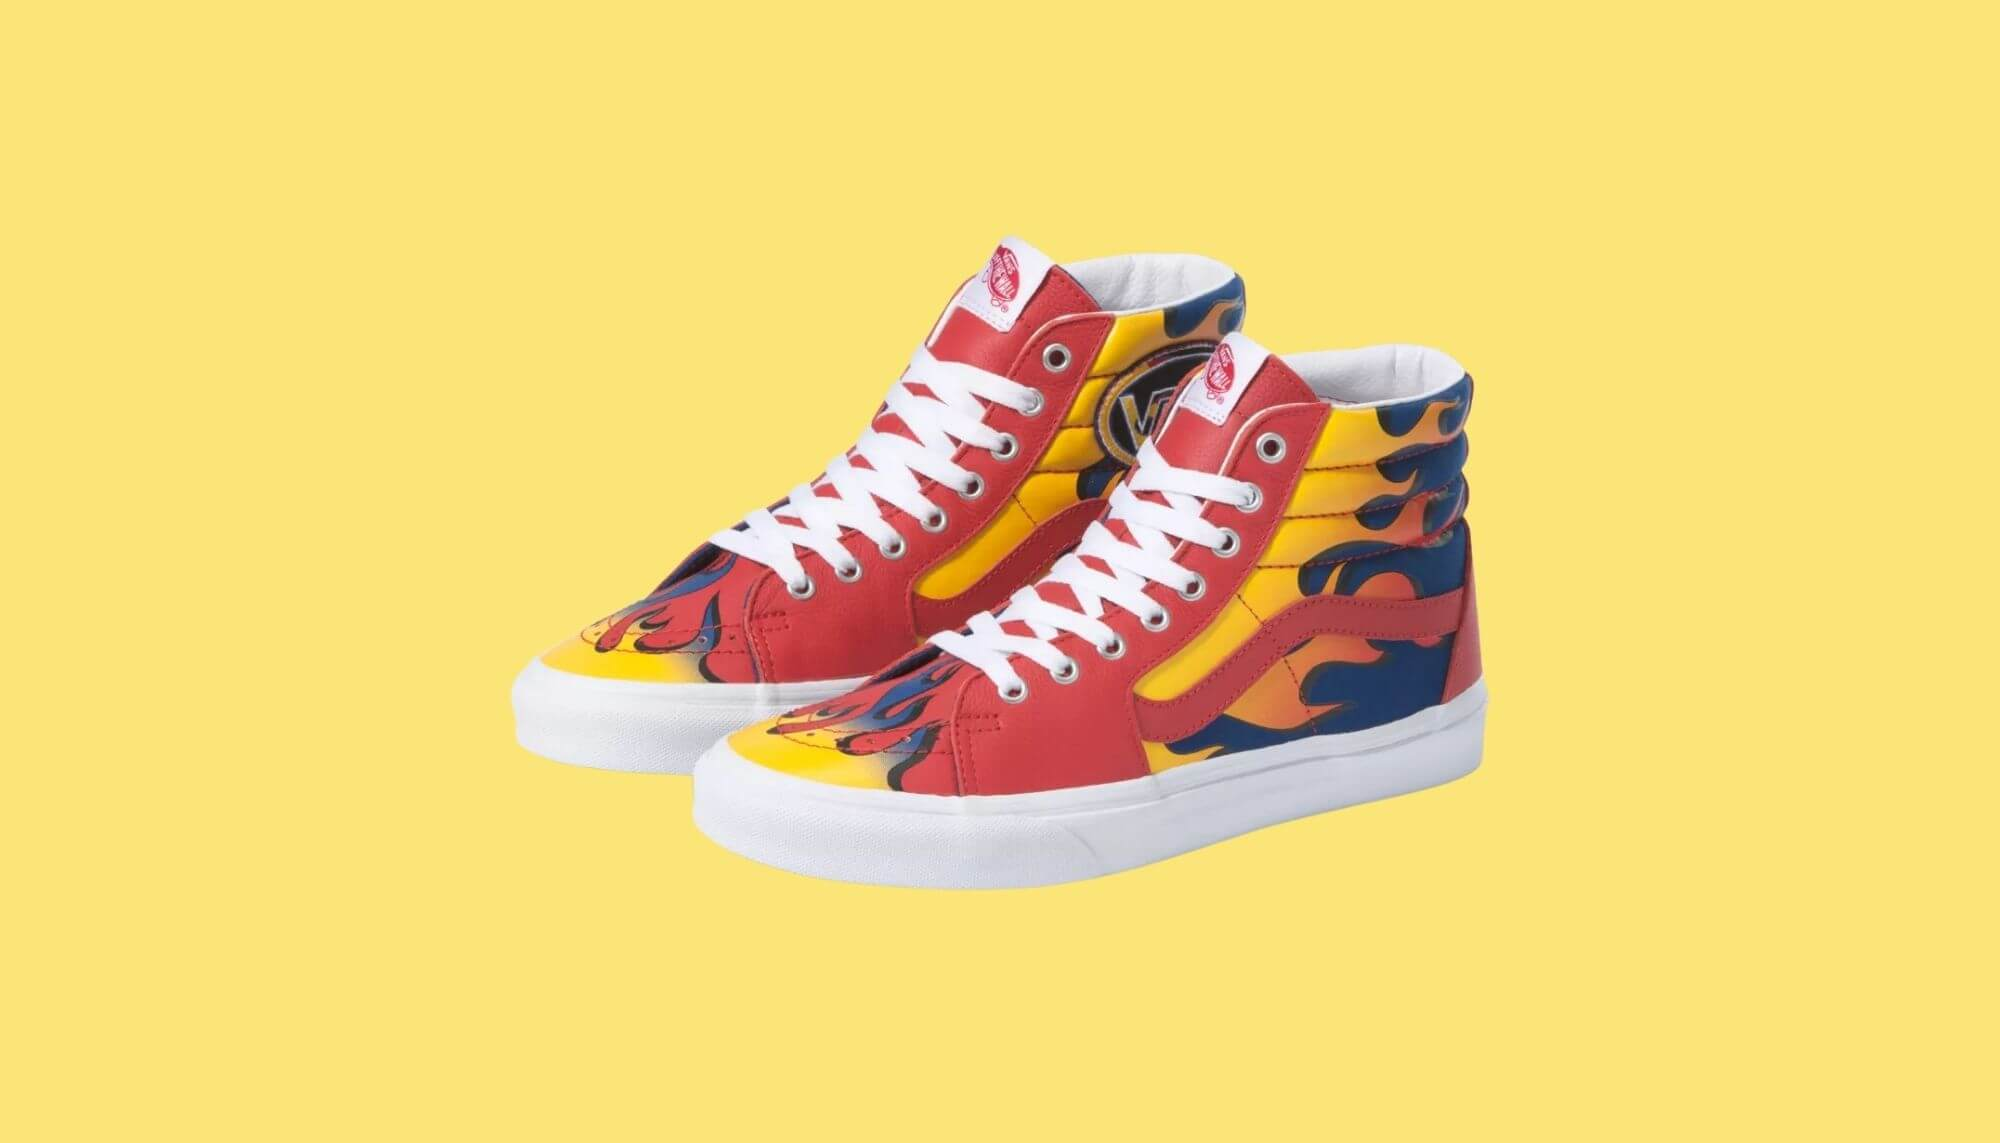 11 Best Vans Shoes to Add to Your Wishlist in 2021